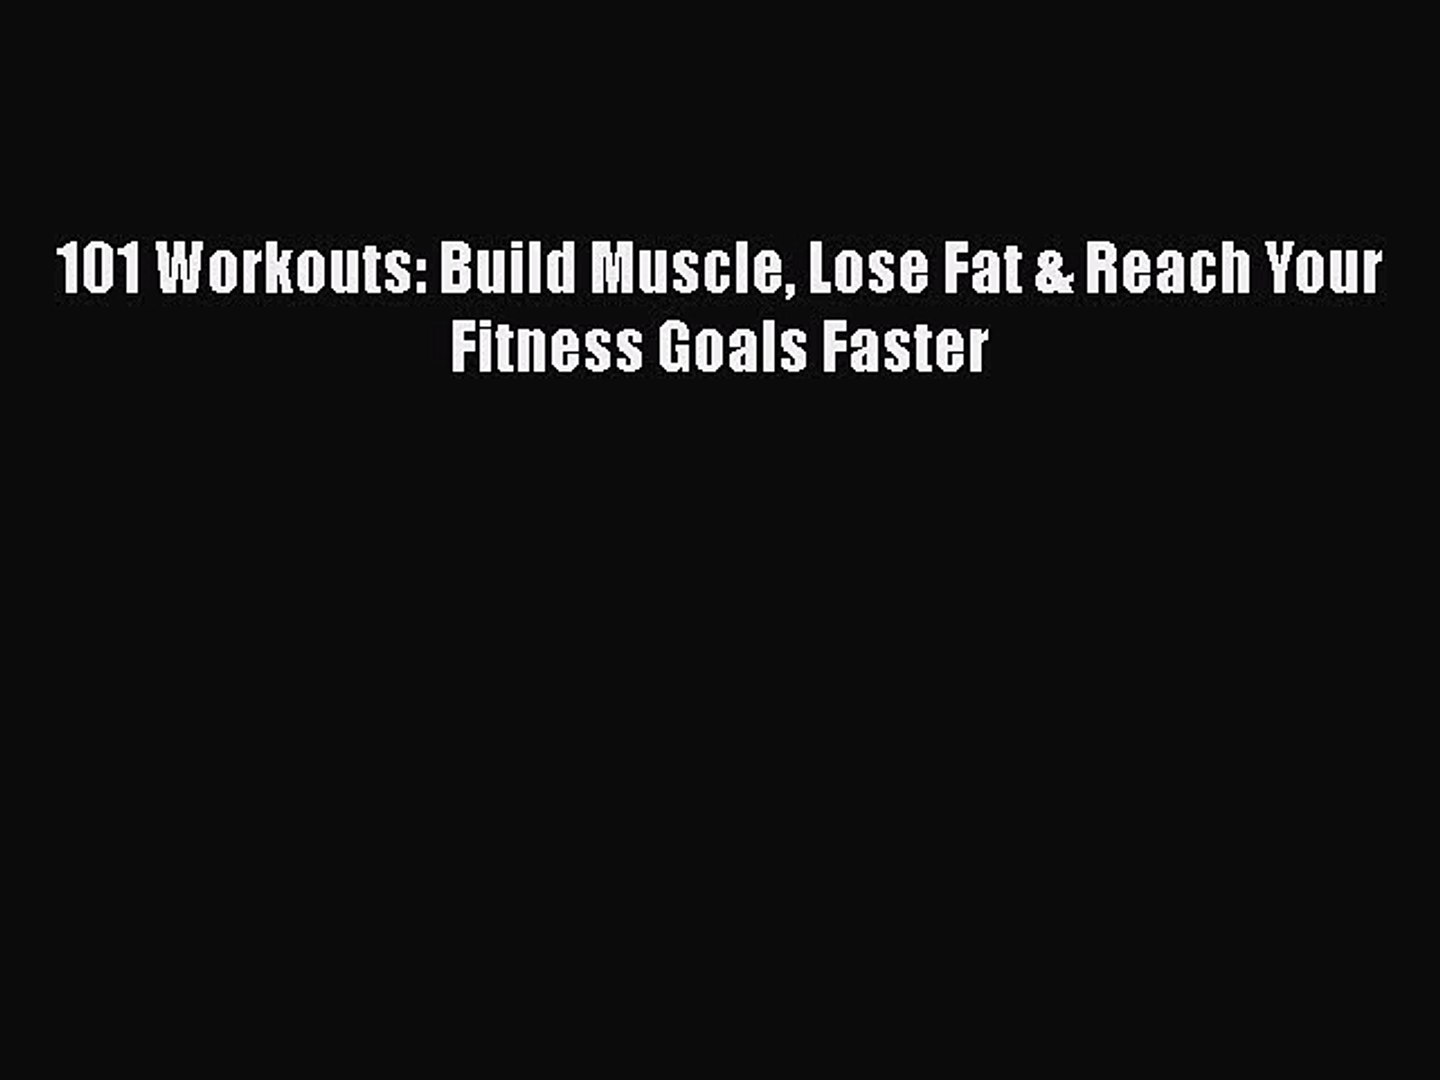 Download 101 Workouts: Build Muscle Lose Fat & Reach Your